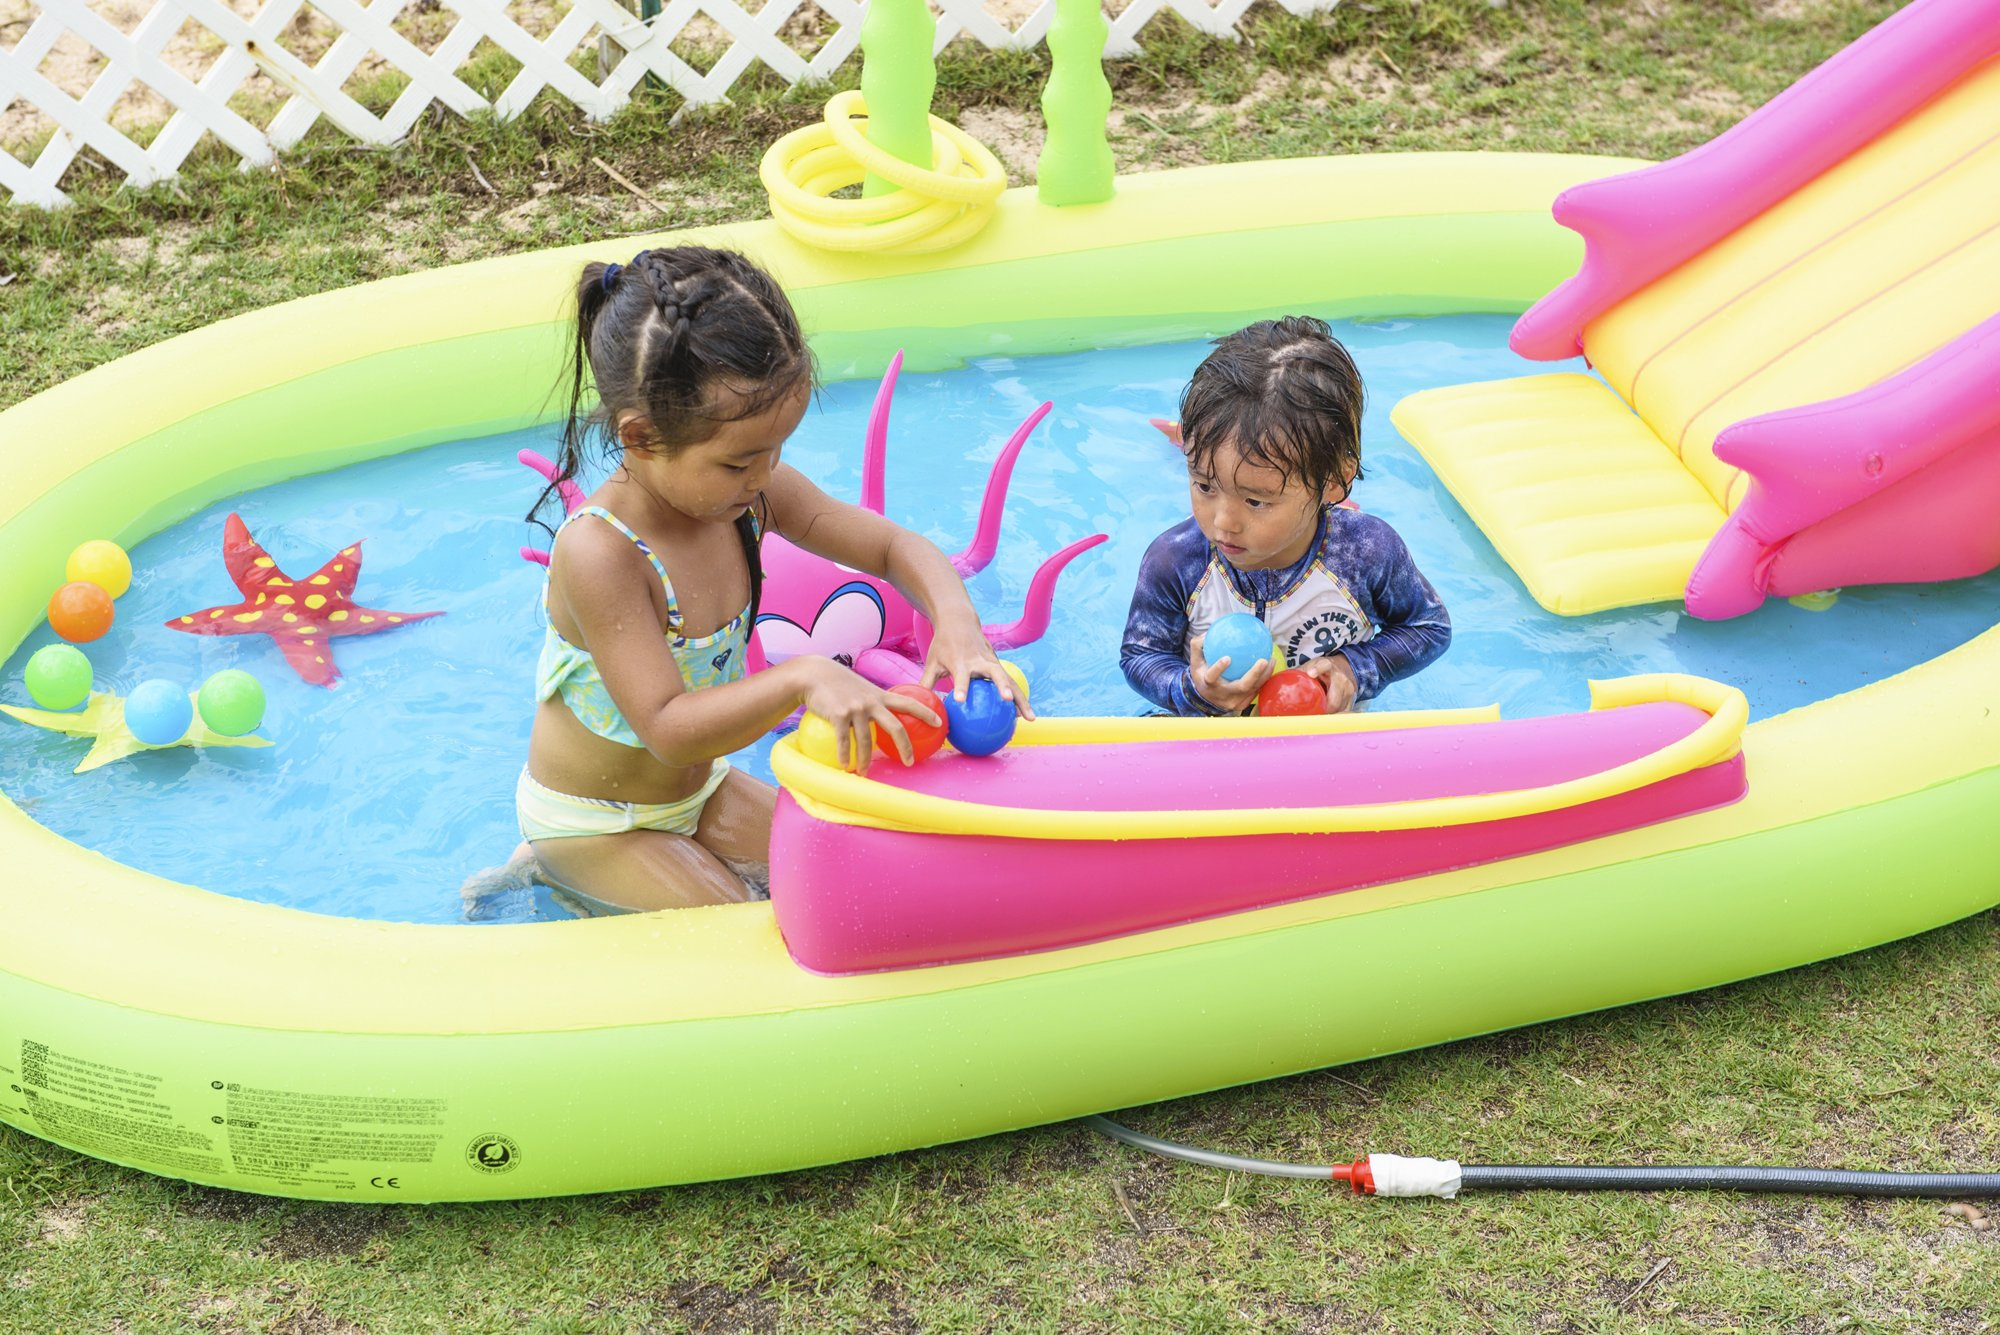 Jilong Giant Inflatable Sea Animal Kiddie Play Pool - Inflatable Pool for Kids - Complete with Pool Accessories and Water Activities - 117'' X 65'' X 22'' by JILONG  (Image #8)